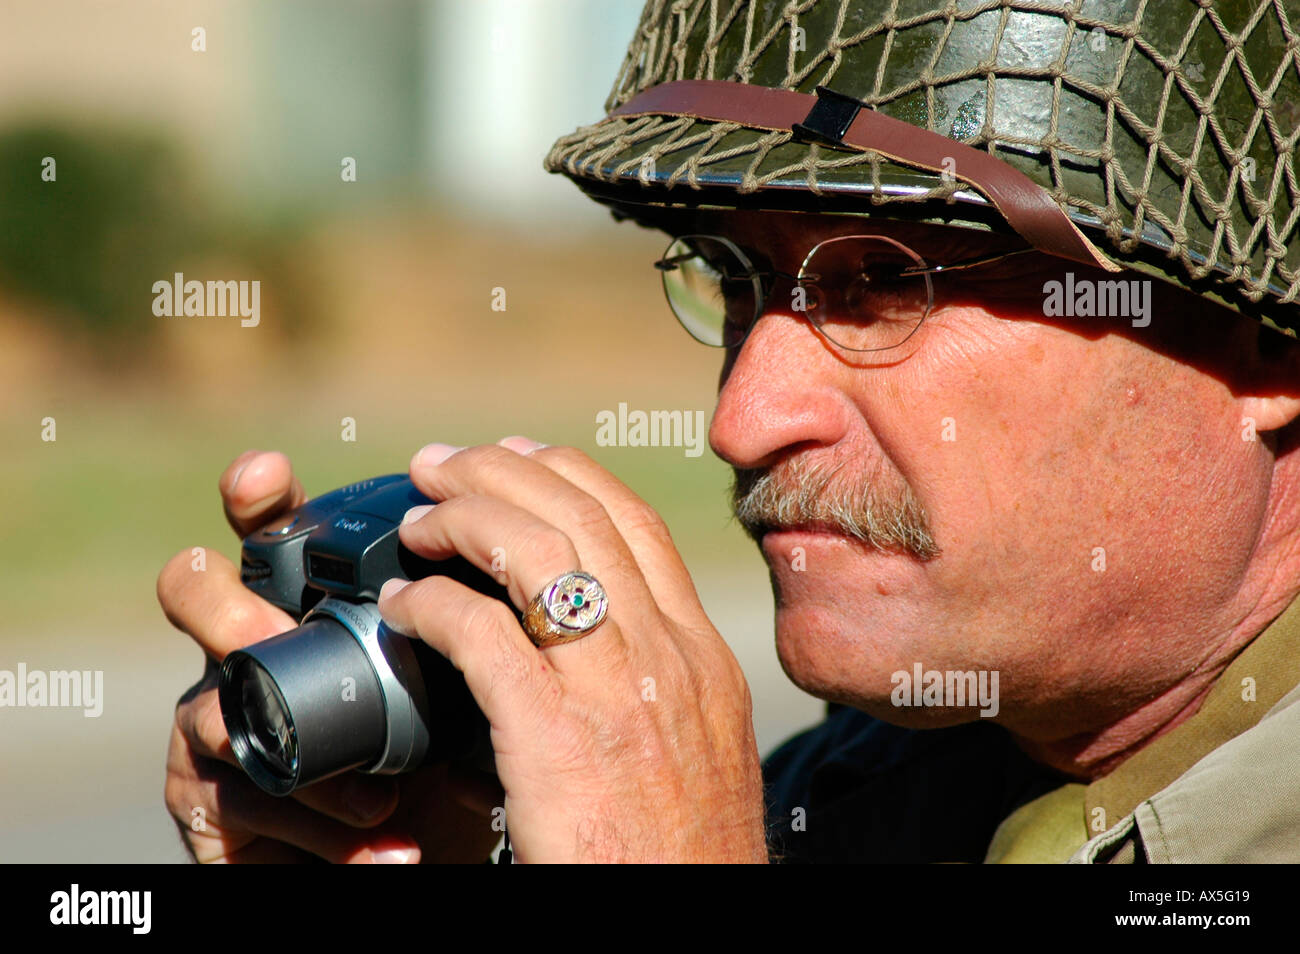 53624e2145 Military Re Enactor In Ww2 American Stock Photos & Military Re ...